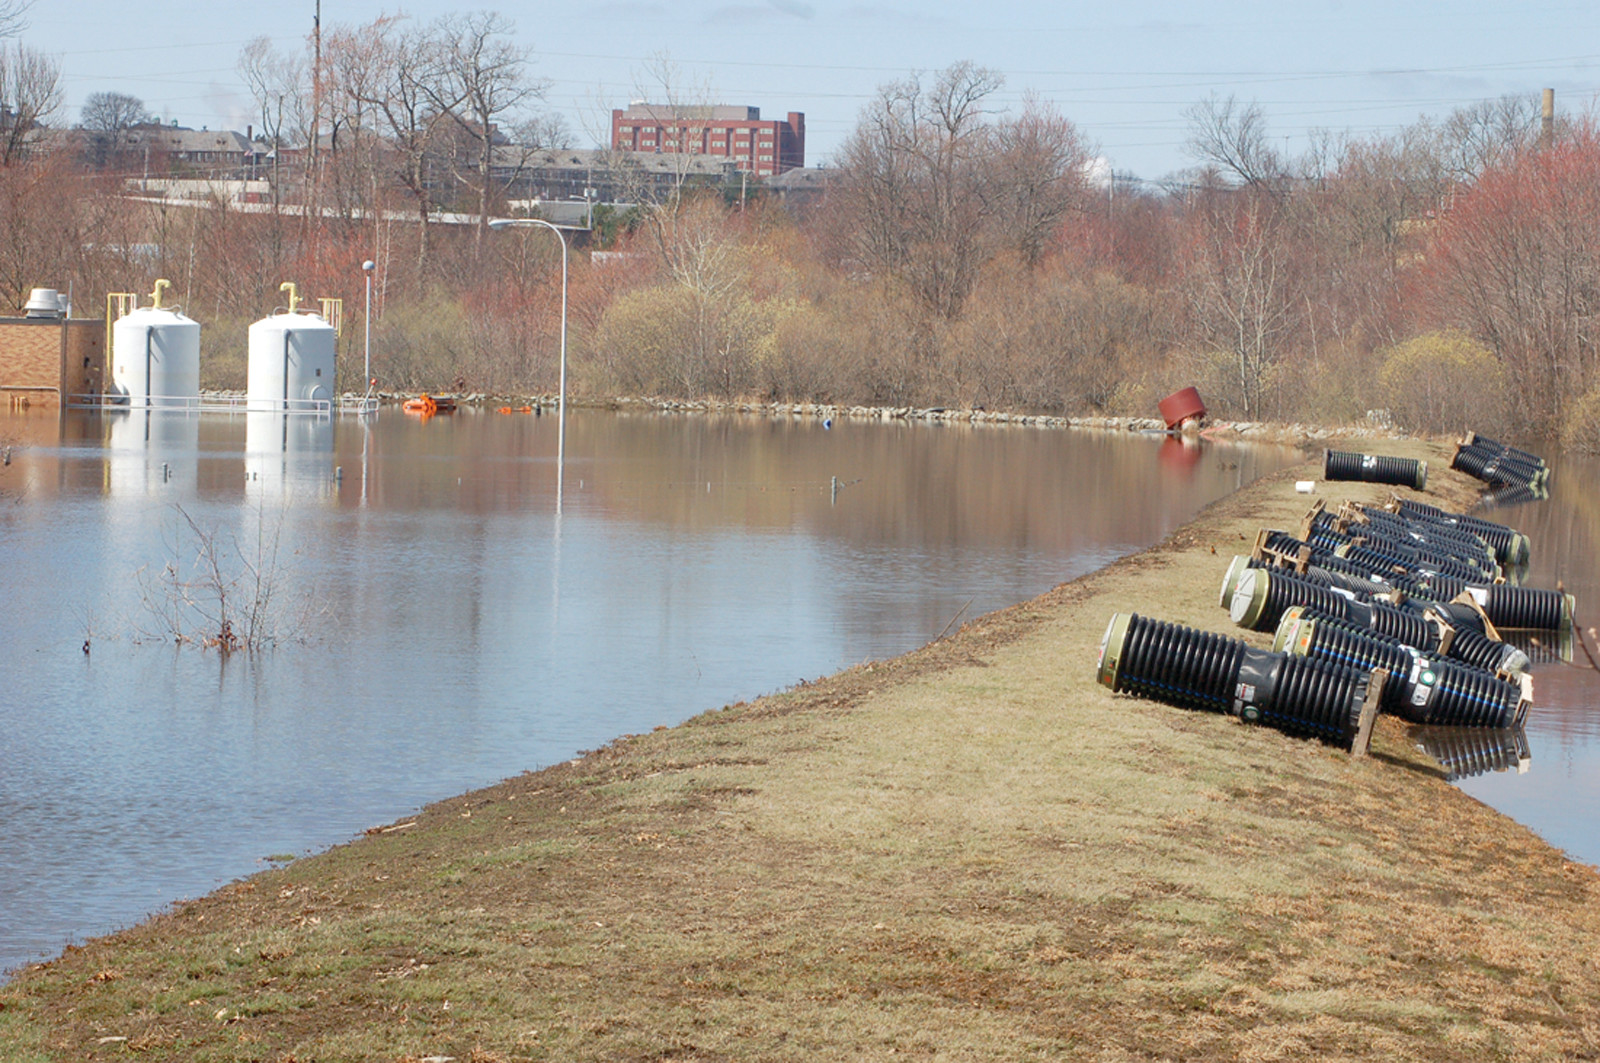 MOTHER NATURE'S FURY: A historic flood filled the 15-acre site with tens of millions of gallons of stormwater and untreated wastewater, which caused a total of $14 million in damages. The levee, which was designed to keep water out, actually made it more difficult to get the water out once it had crested the hill.